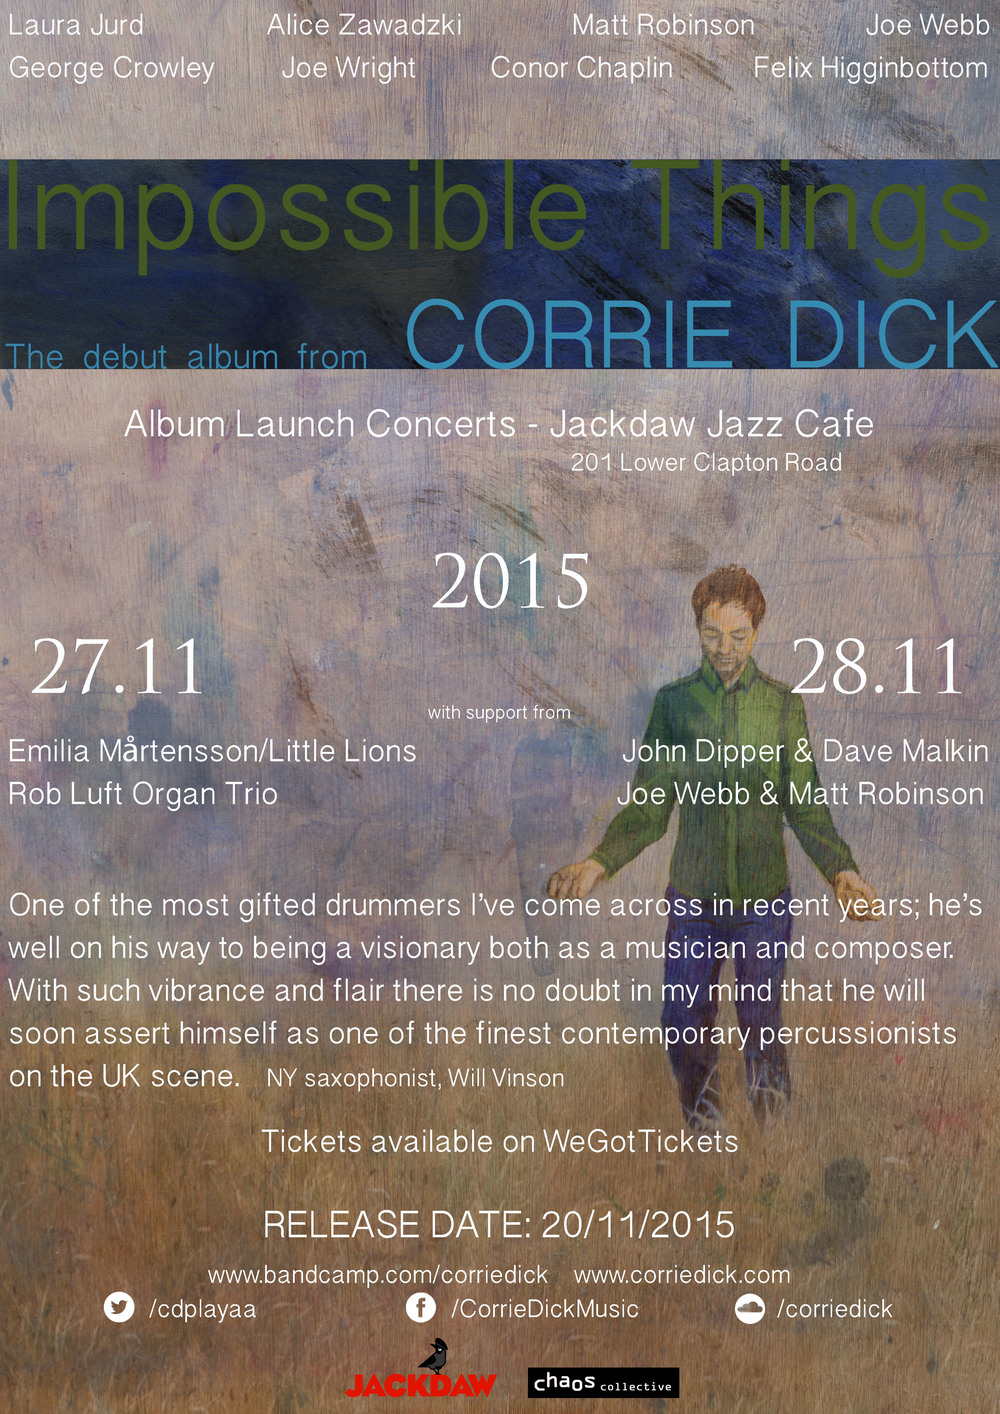 Poster for Composer, Band Leader &Musician Corrie Dick